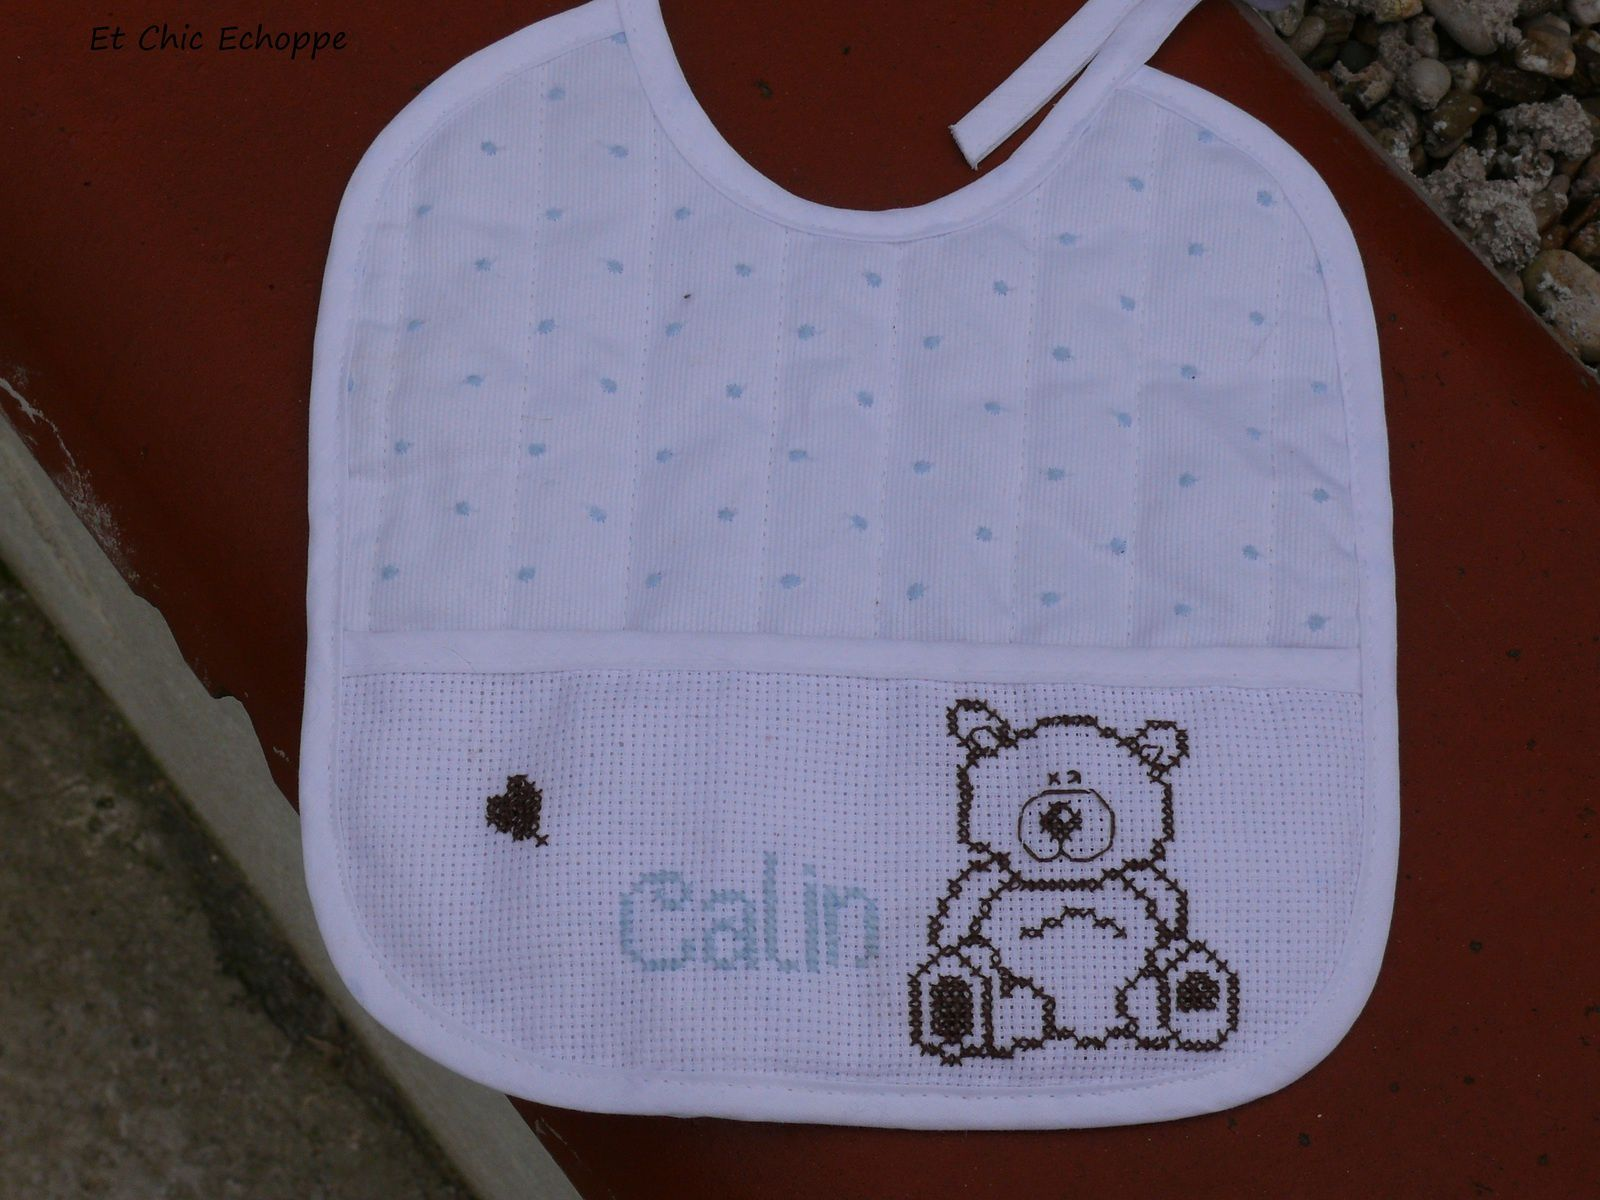 Bavoir brodé ourson calin :  10 euros